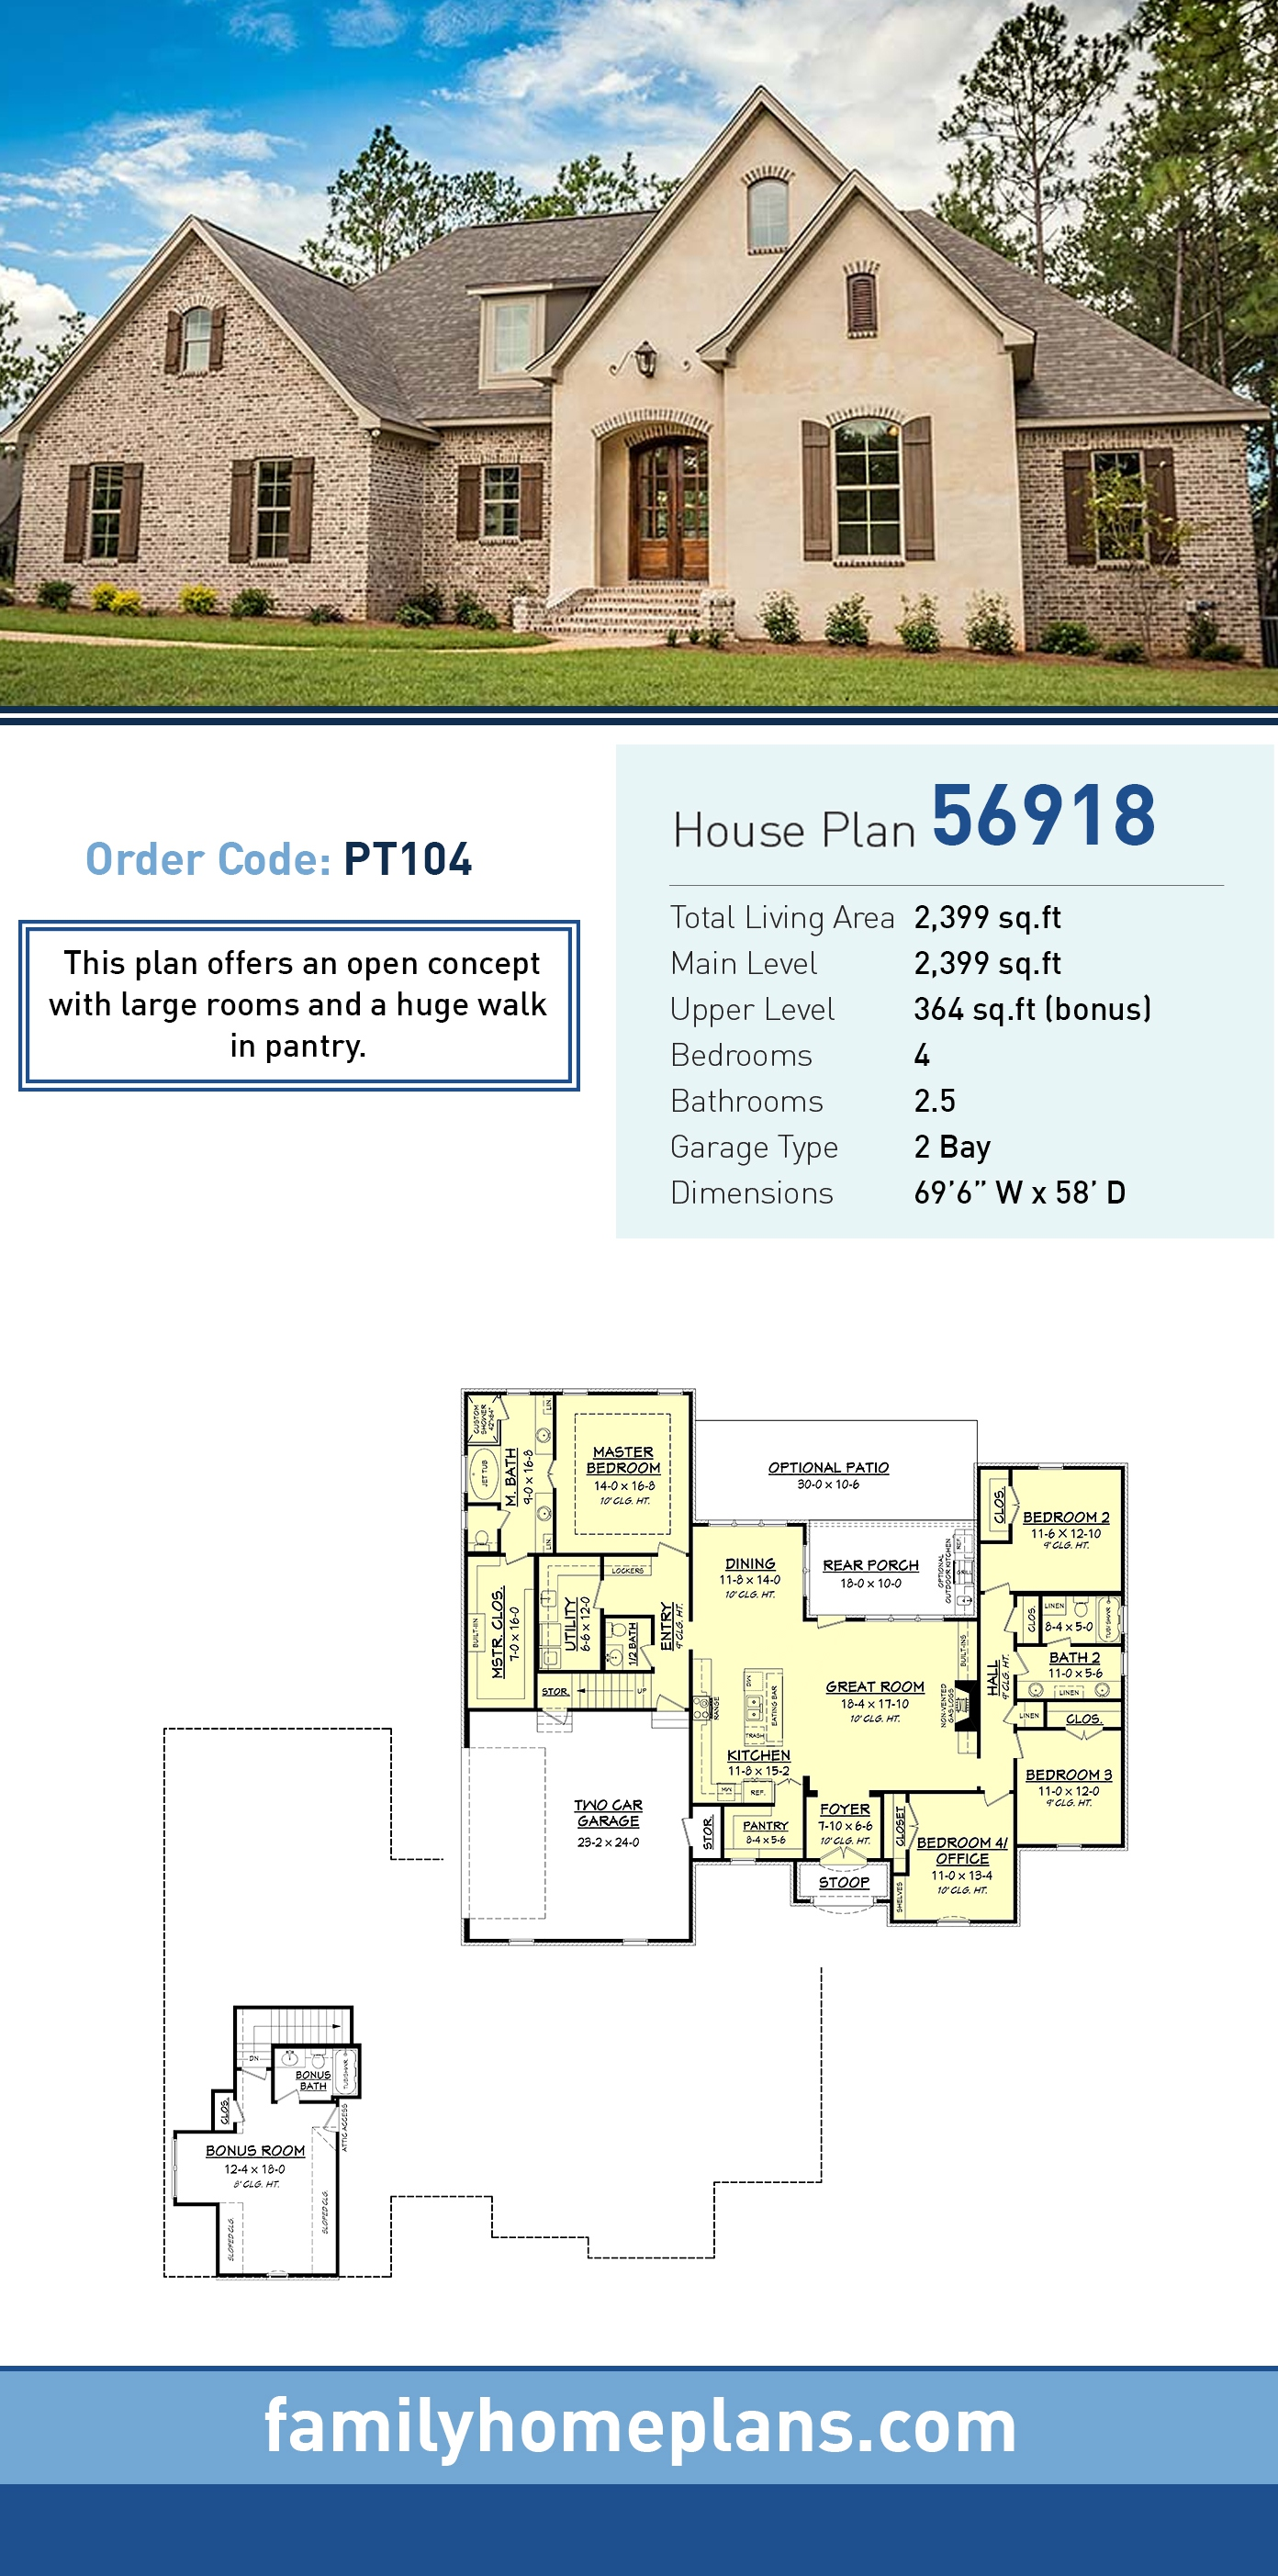 European, French Country, Southern, Traditional House Plan 56918 with 4 Beds, 3 Baths, 2 Car Garage